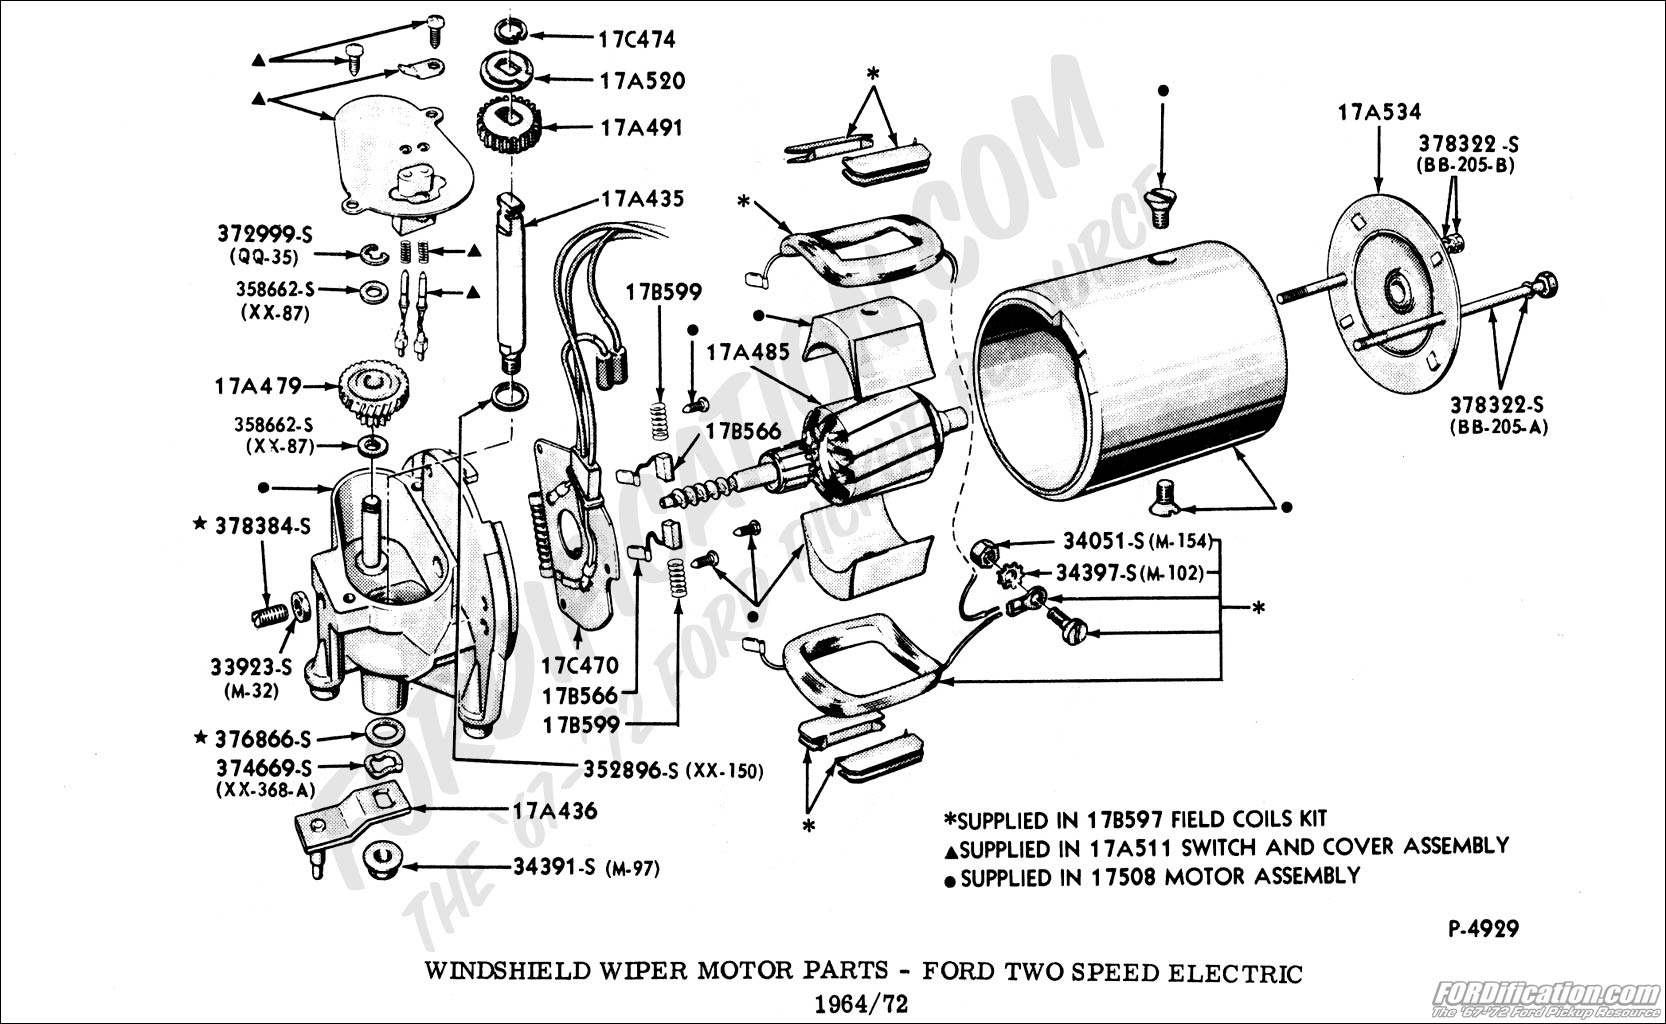 73 f100 wiring diagram get free image about wiring diagram 1978 Ford Turn Signal Switch 1968 Ford Turn Signal Switch